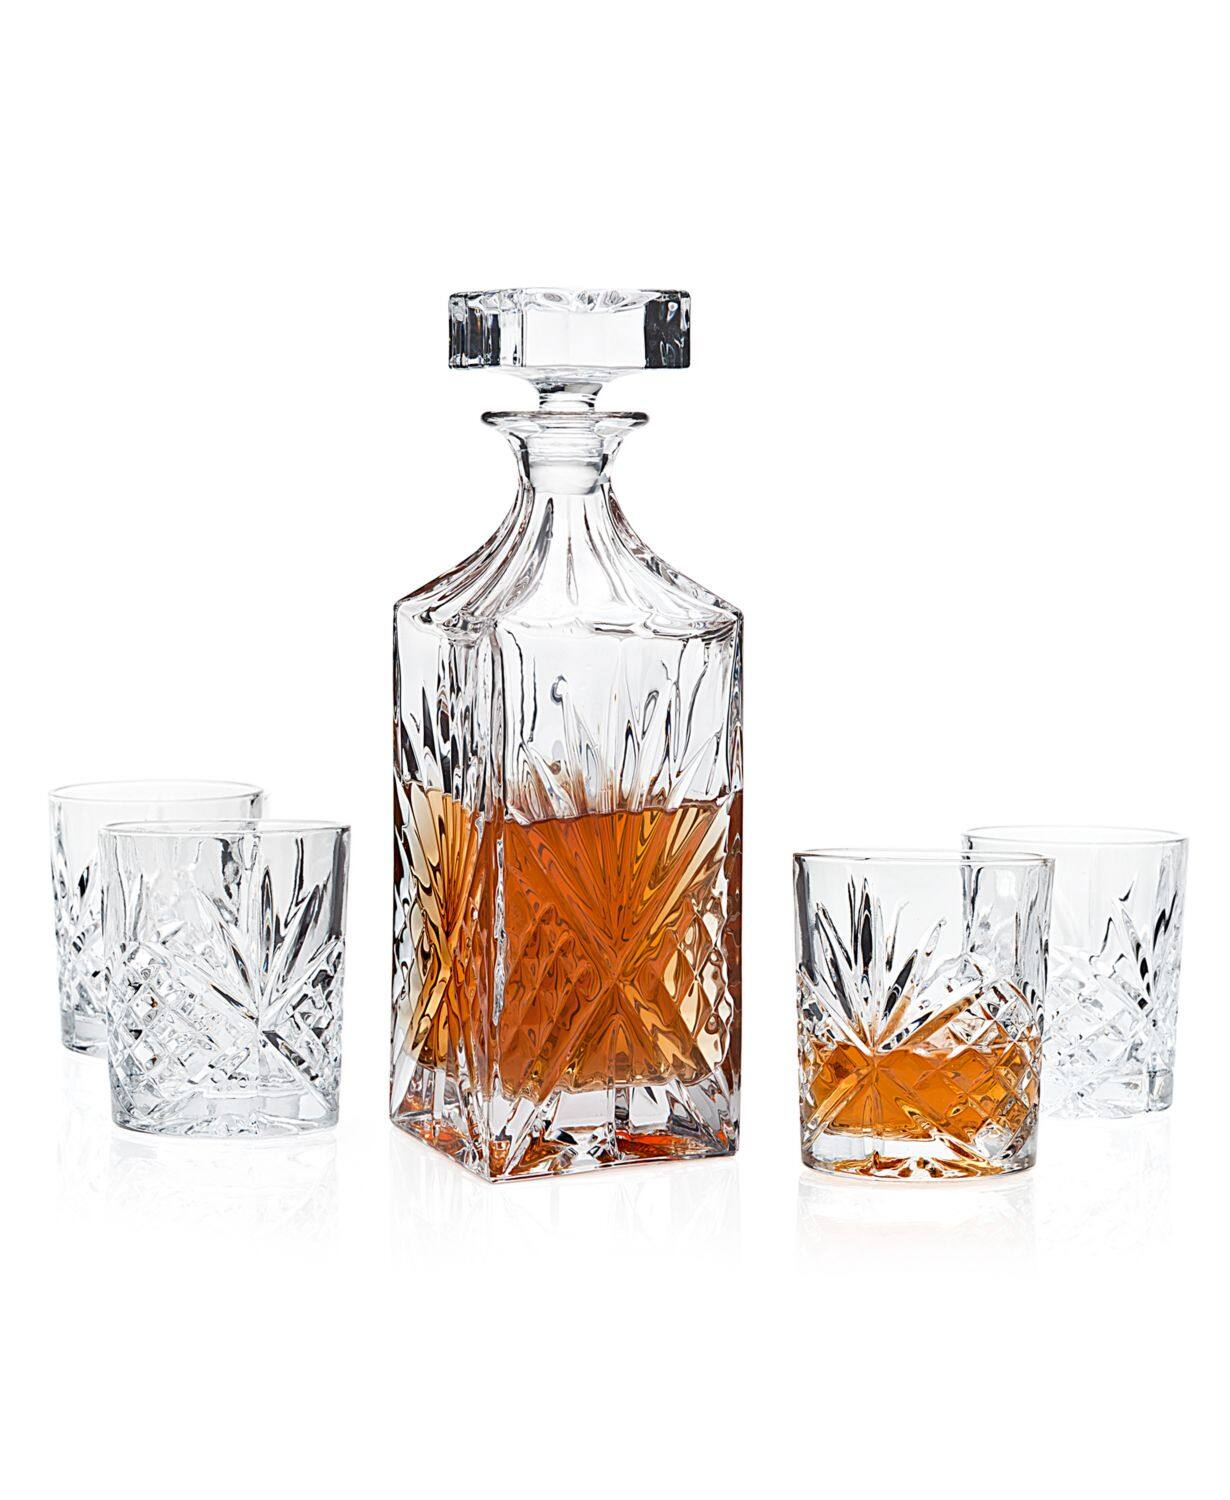 Macys: Godinger - Dublin 5pc.Whiskey Set $20.99 & 7pc Set $27.99, 4-Pc.Coaster Set $4.99, 4-Pc.Bowl Set $9.99, 7-Pc.Spirits Set $13.99 & Much More Marked at 60% off or More.